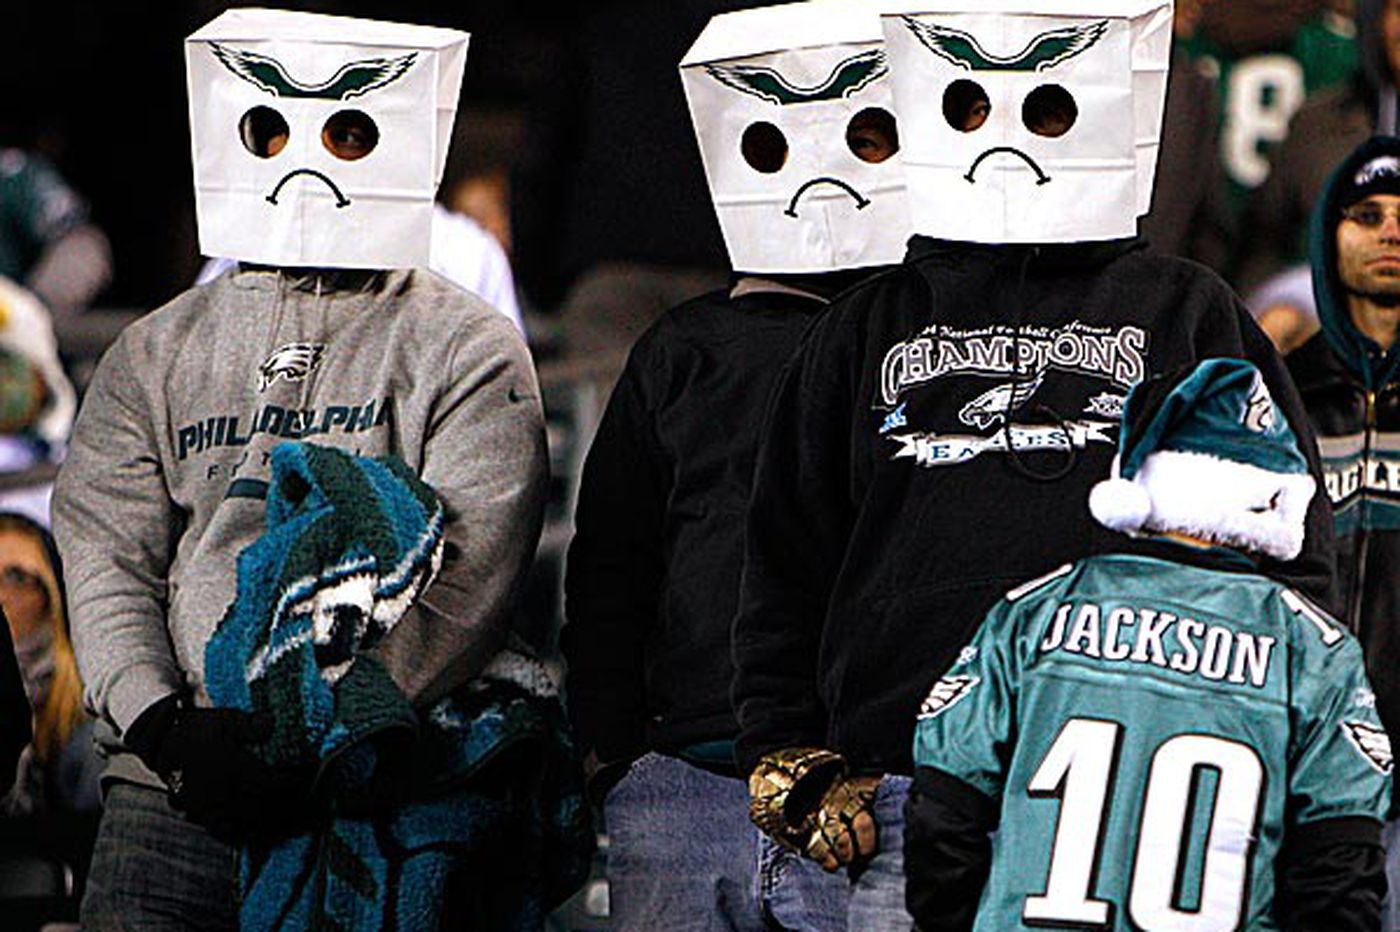 End of the world relief for Philly fans